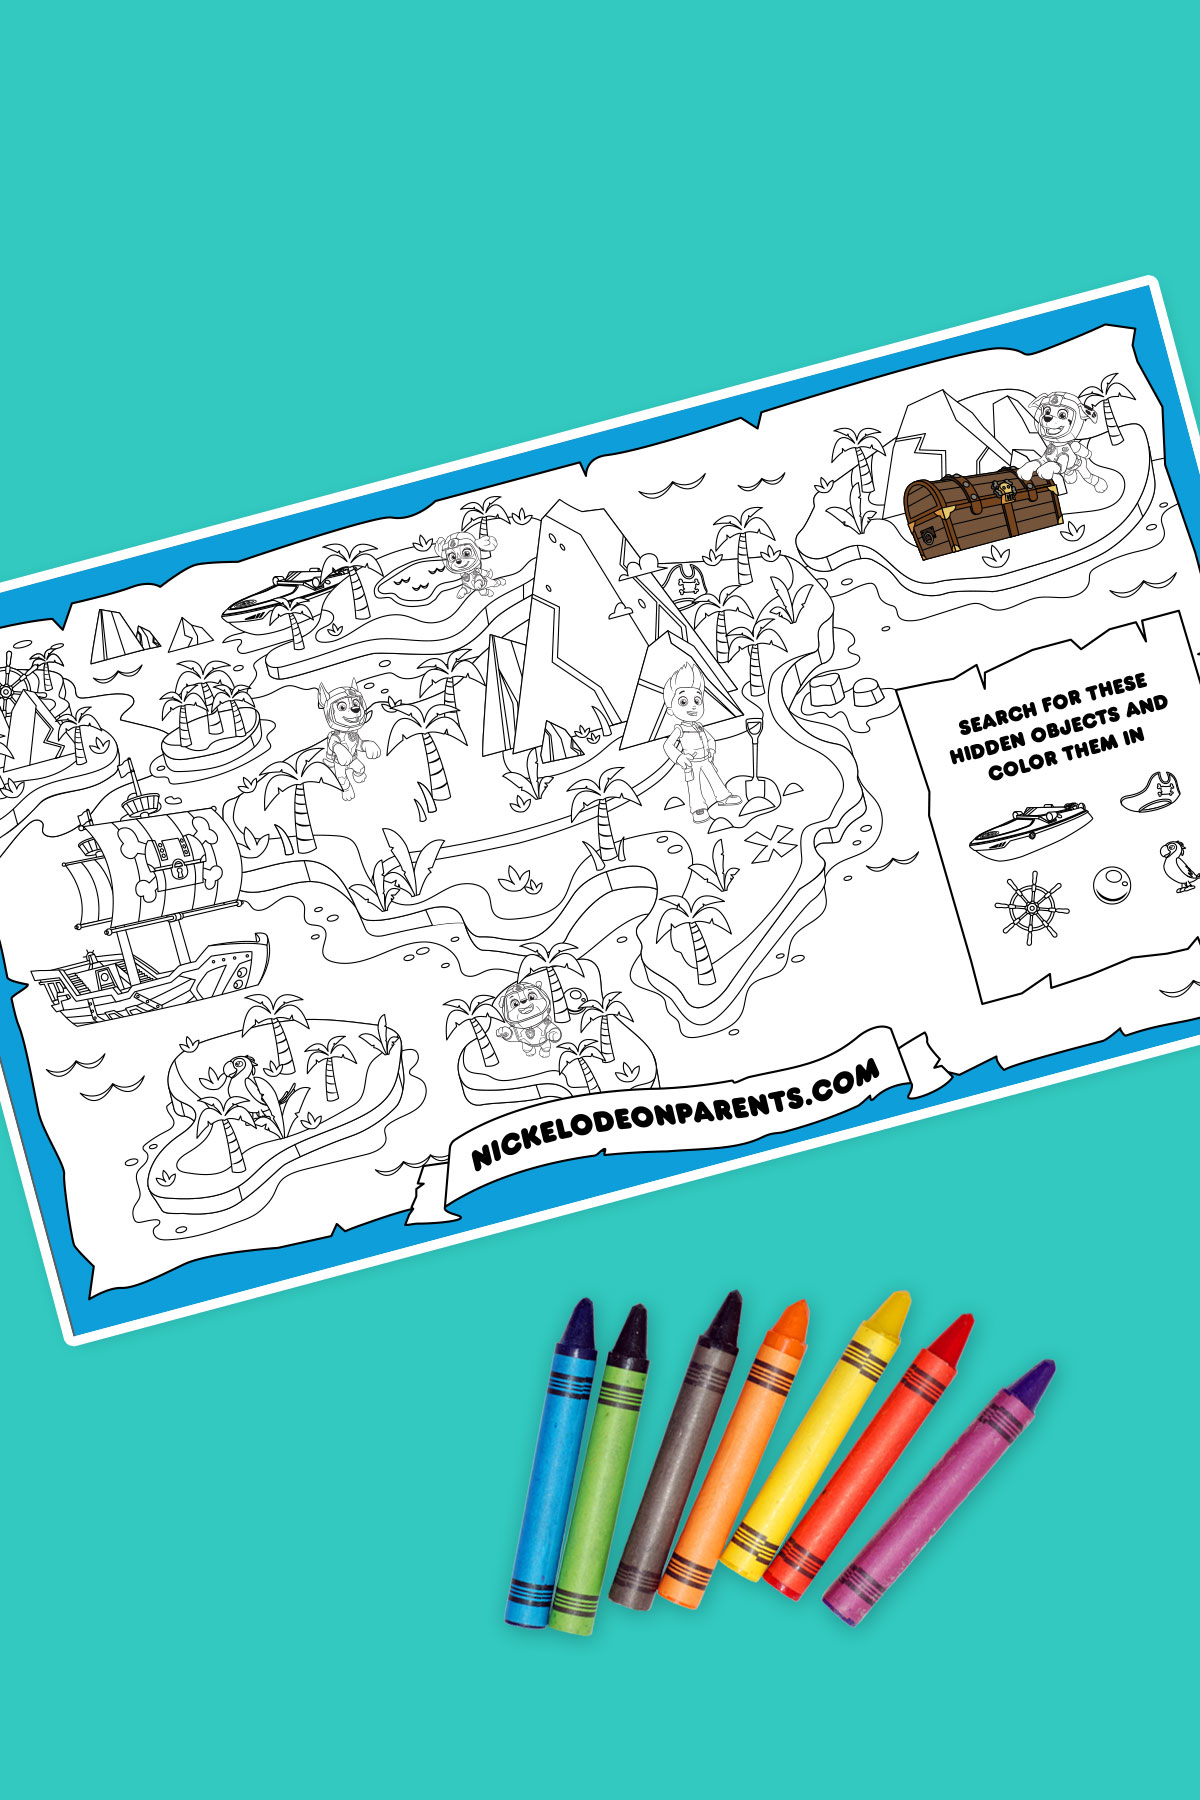 graphic about Printable Treasure Maps named Sea Patrol Printable Treasure Map Nickelodeon Mom and dad